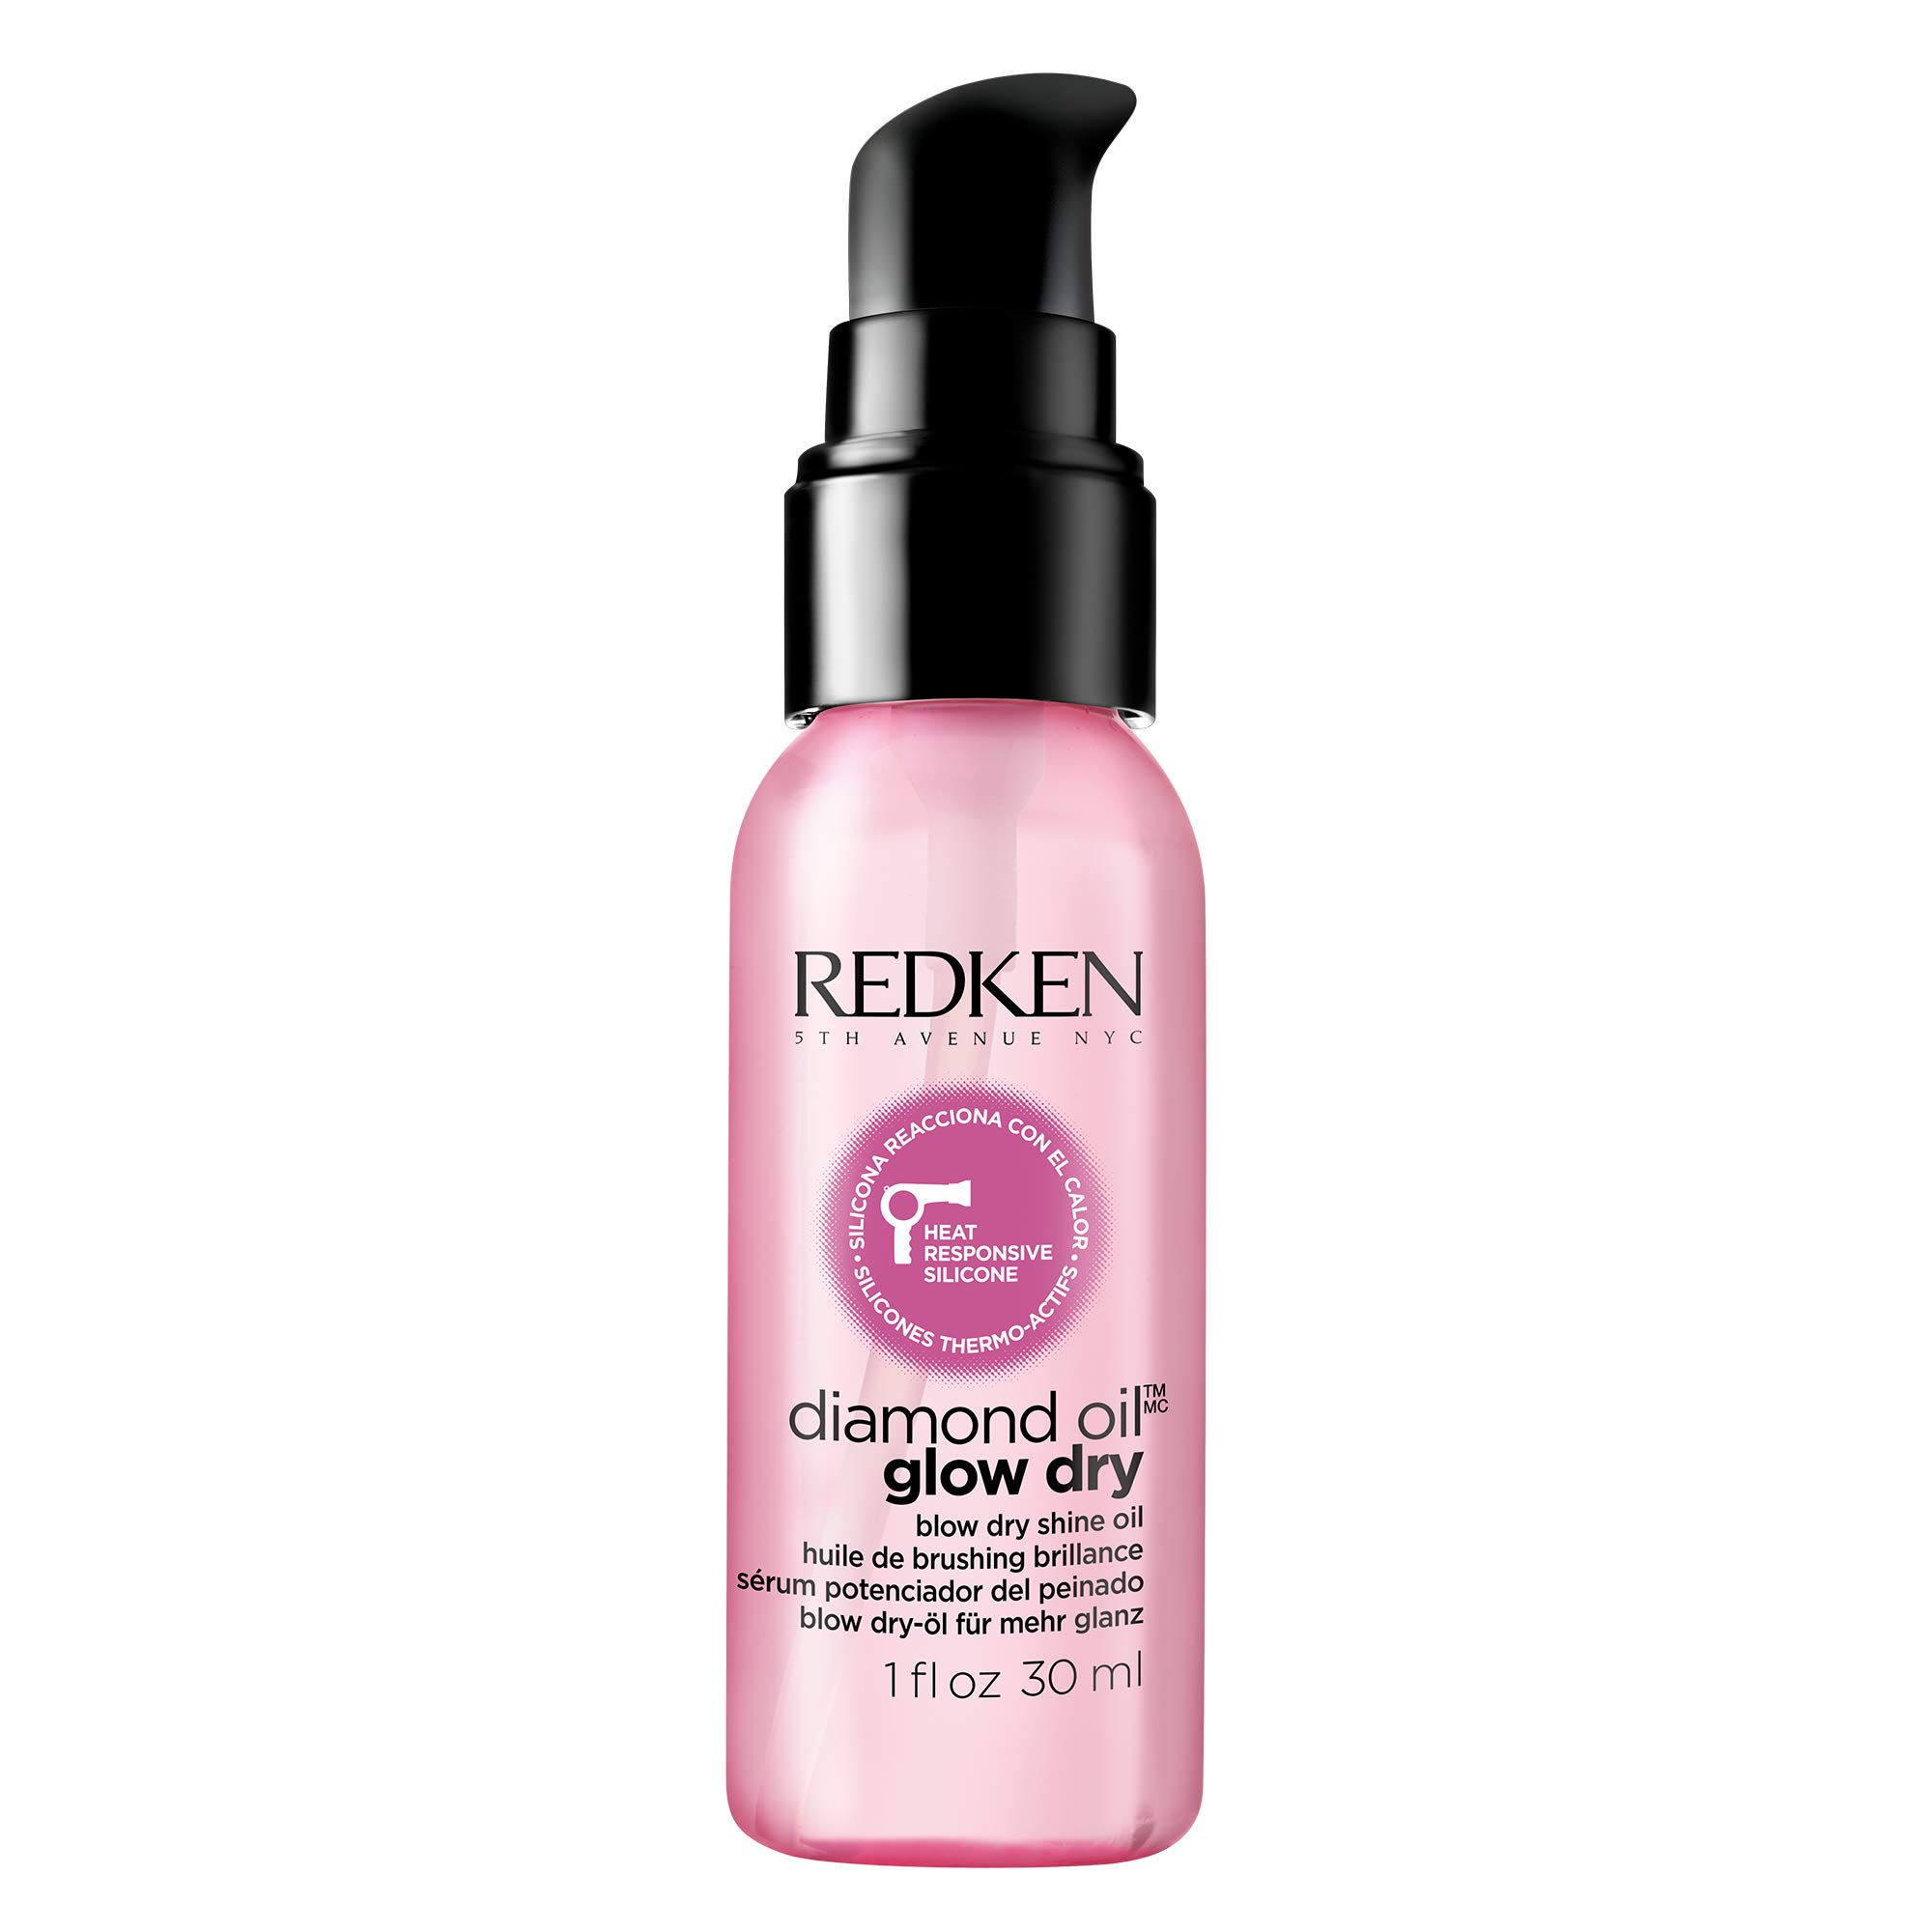 Redken Diamond Oil Glow Dry | For All Hair Types | Style Enhancing Oil Adds Shine & Protects From Heat Damage